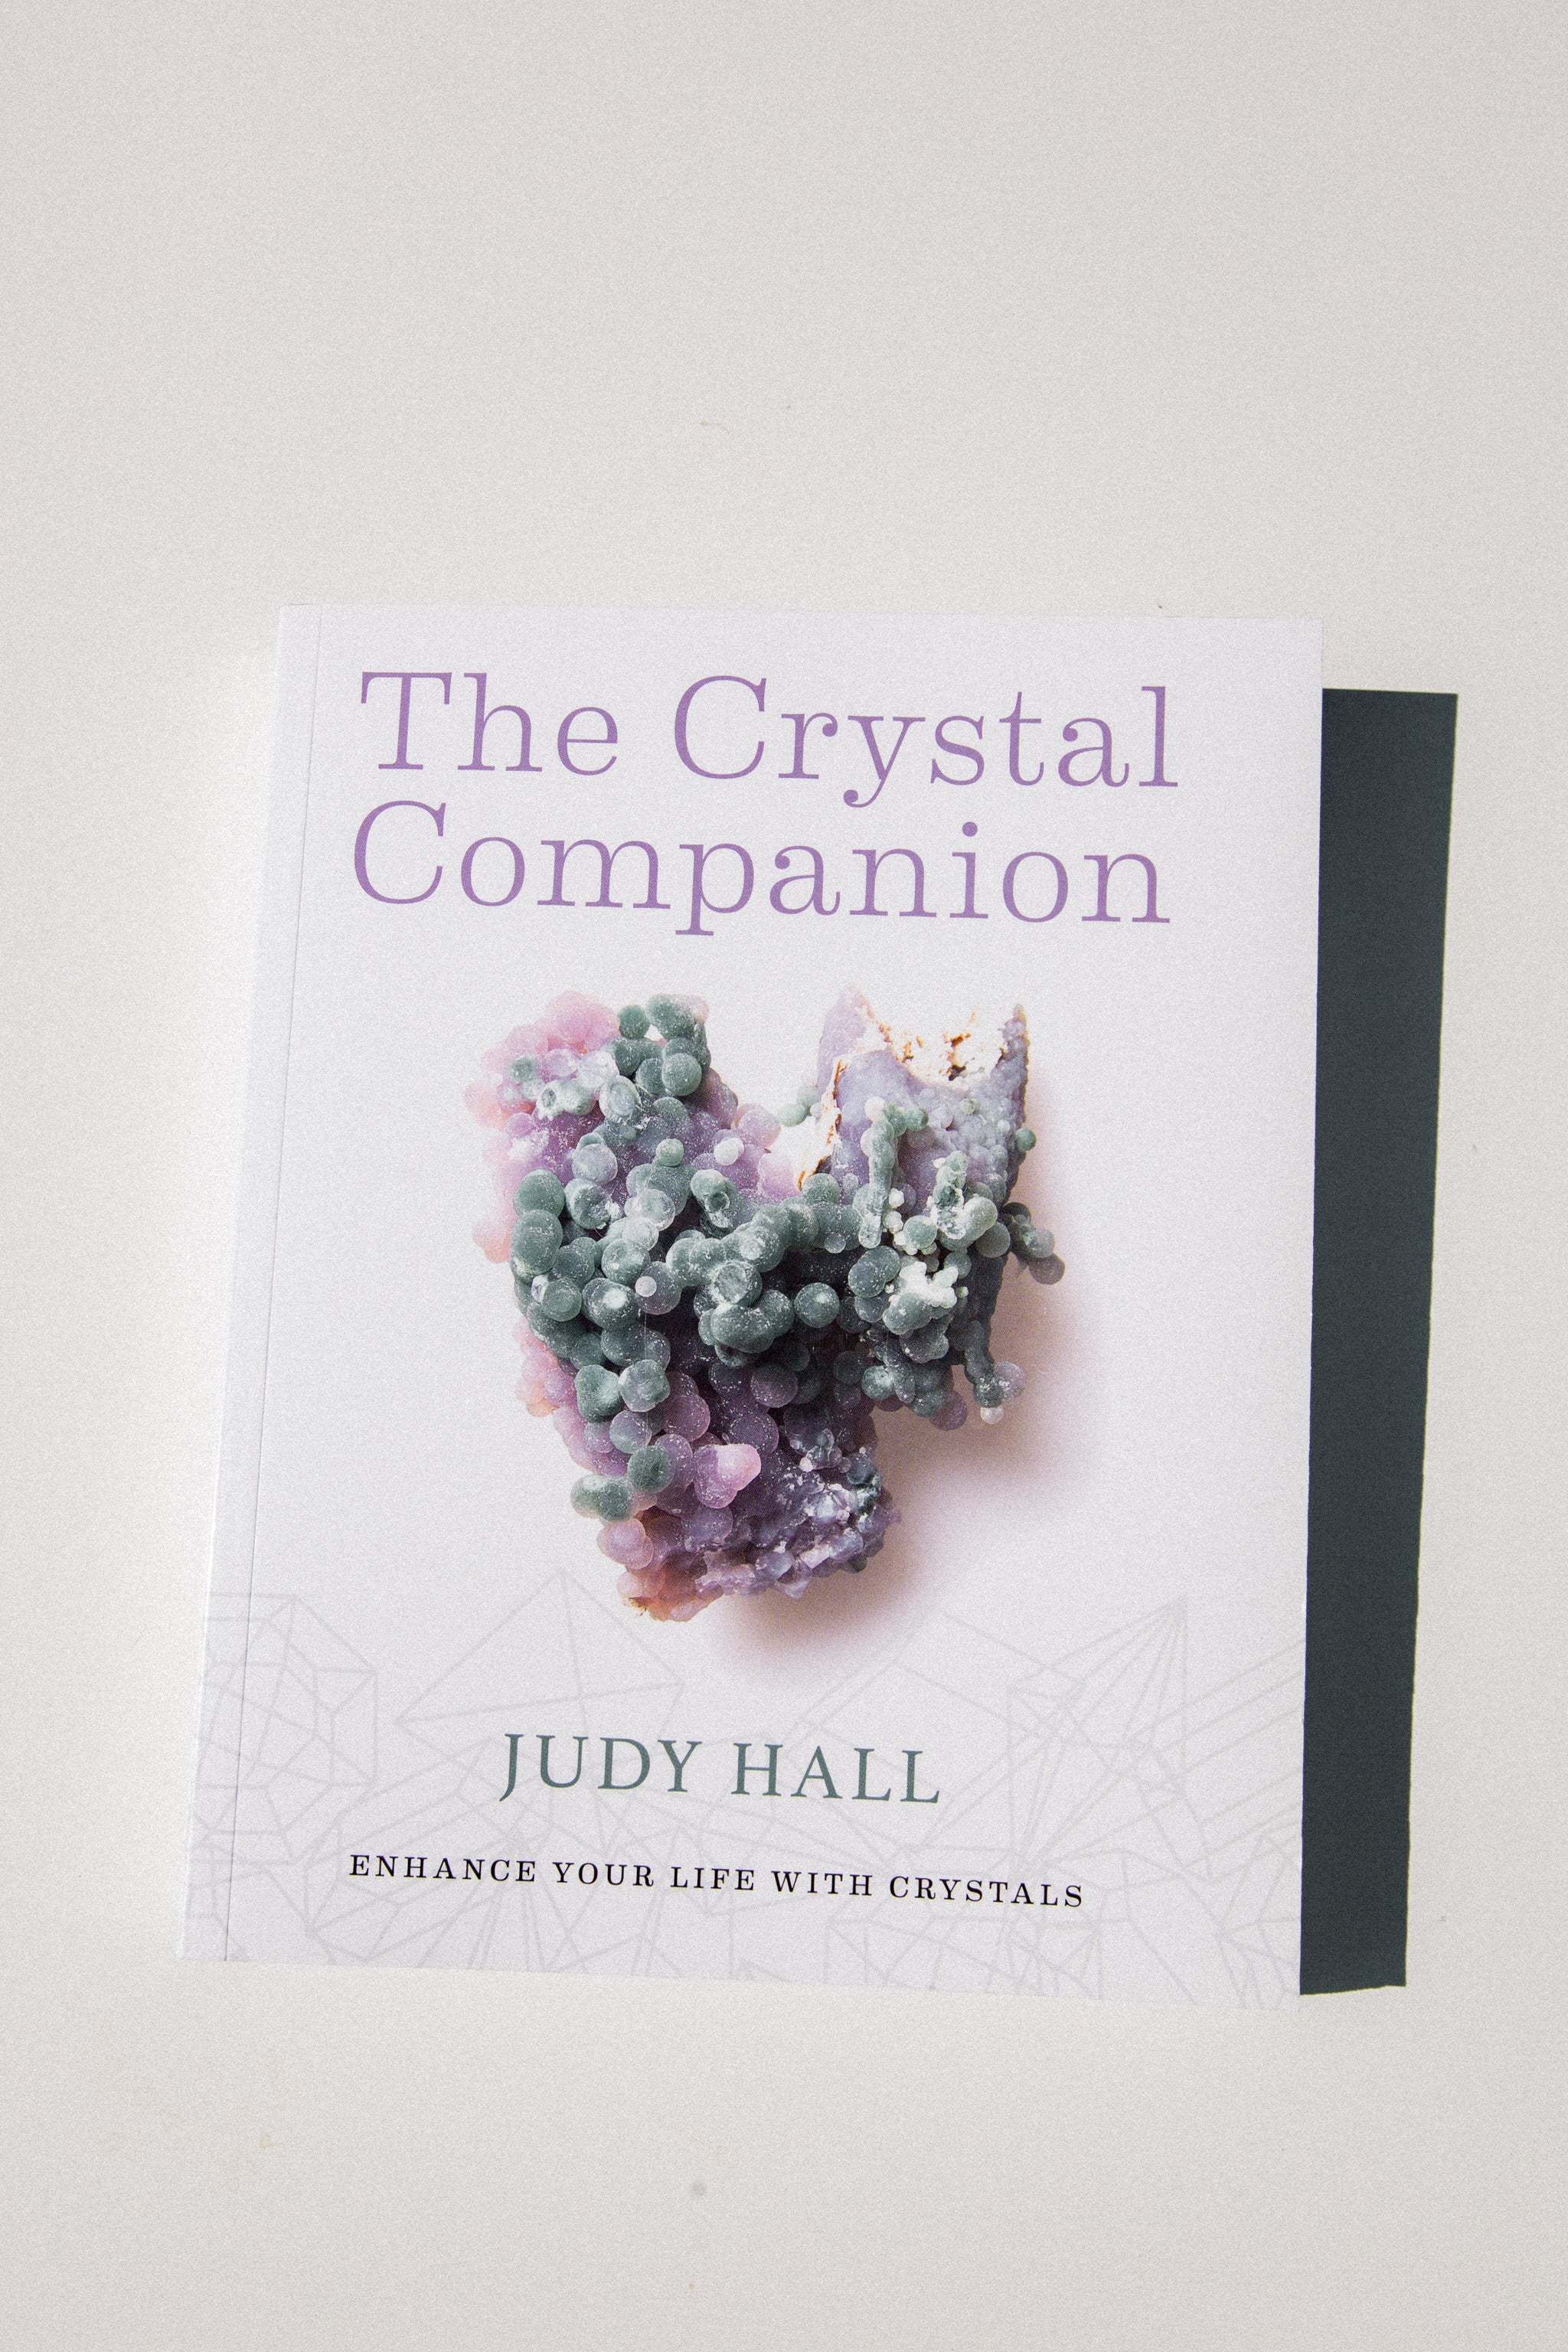 The Crystal Companion by Judy Hall